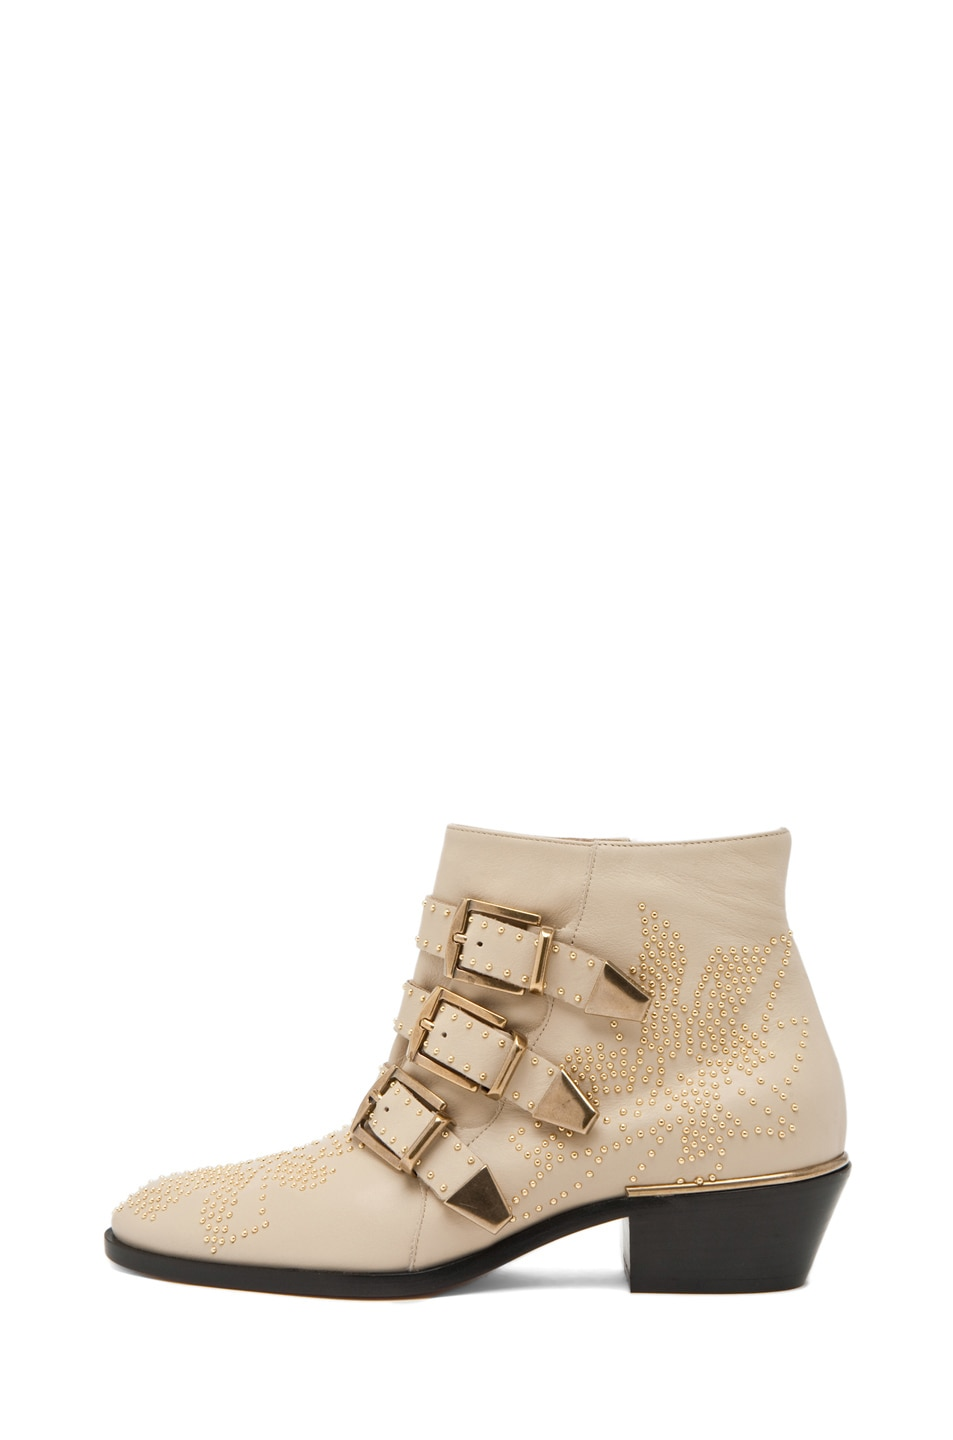 Image 1 of Chloe Susanna Leather Studded Bootie in Cream